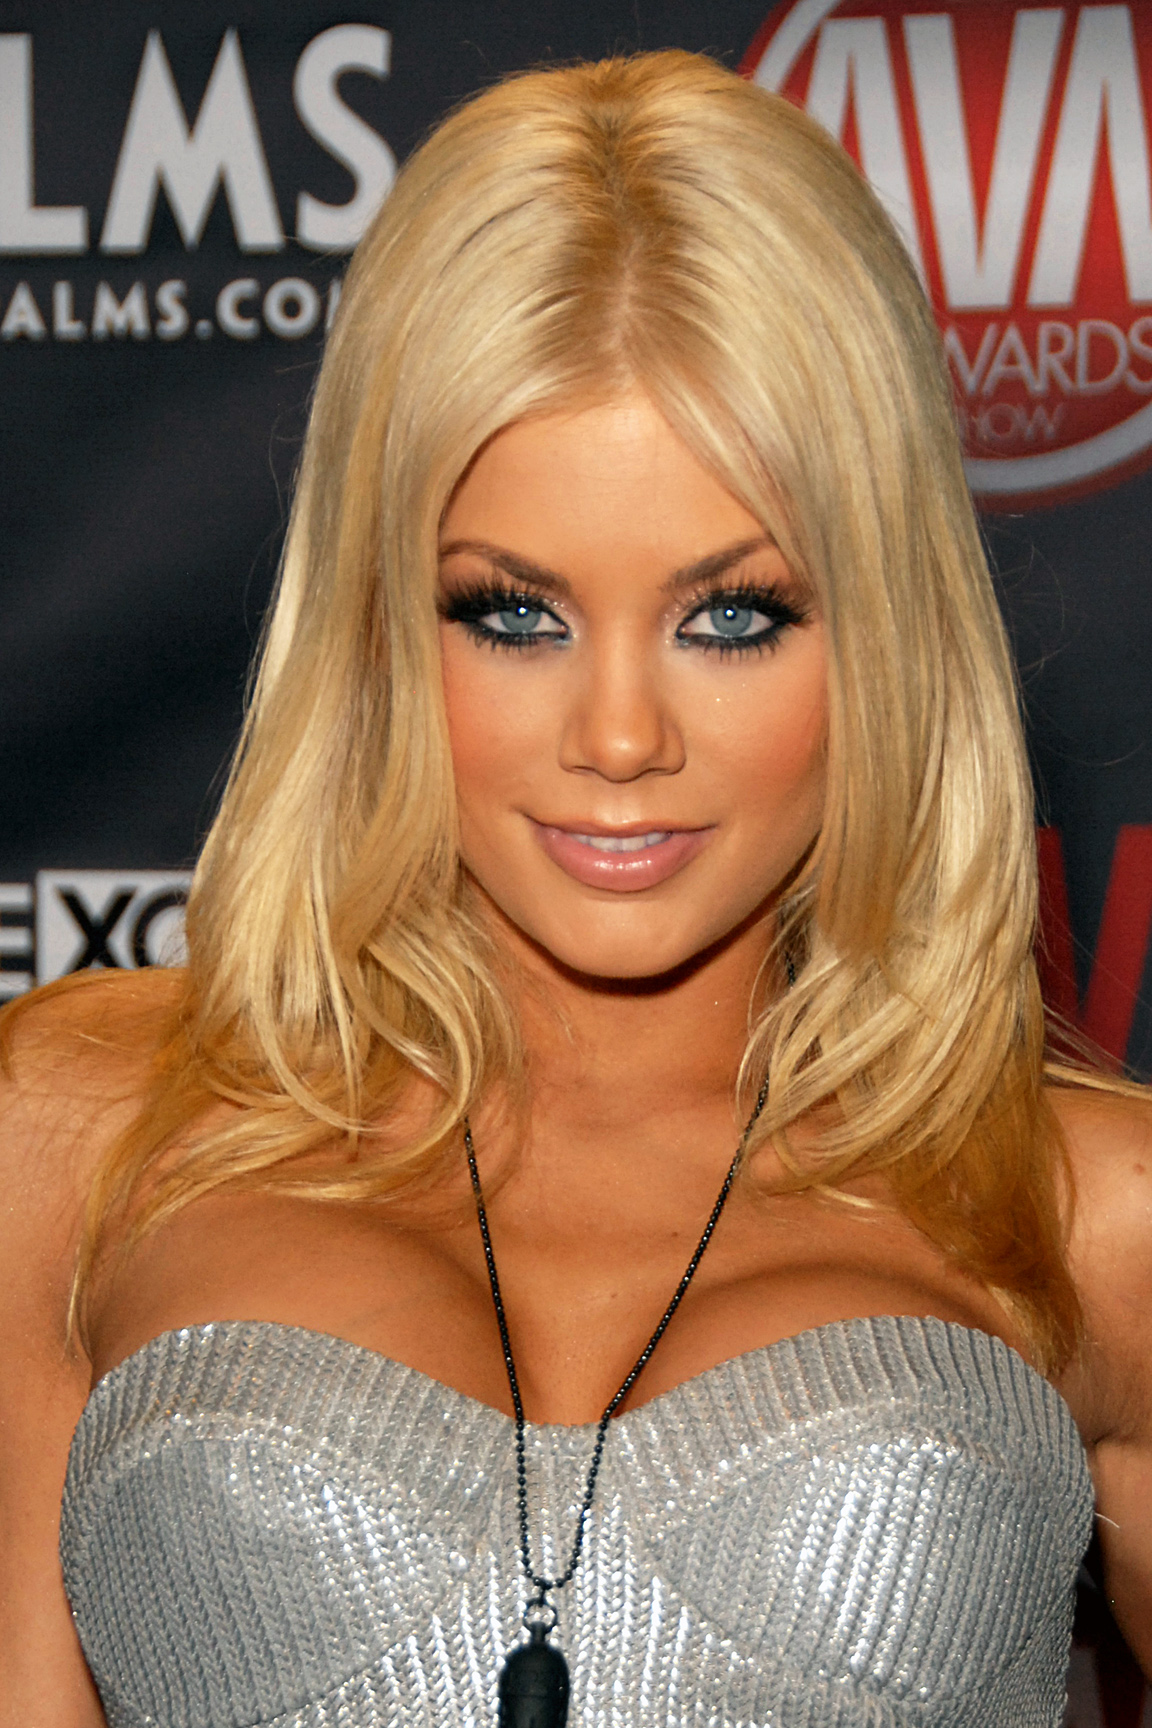 Riley steele photos